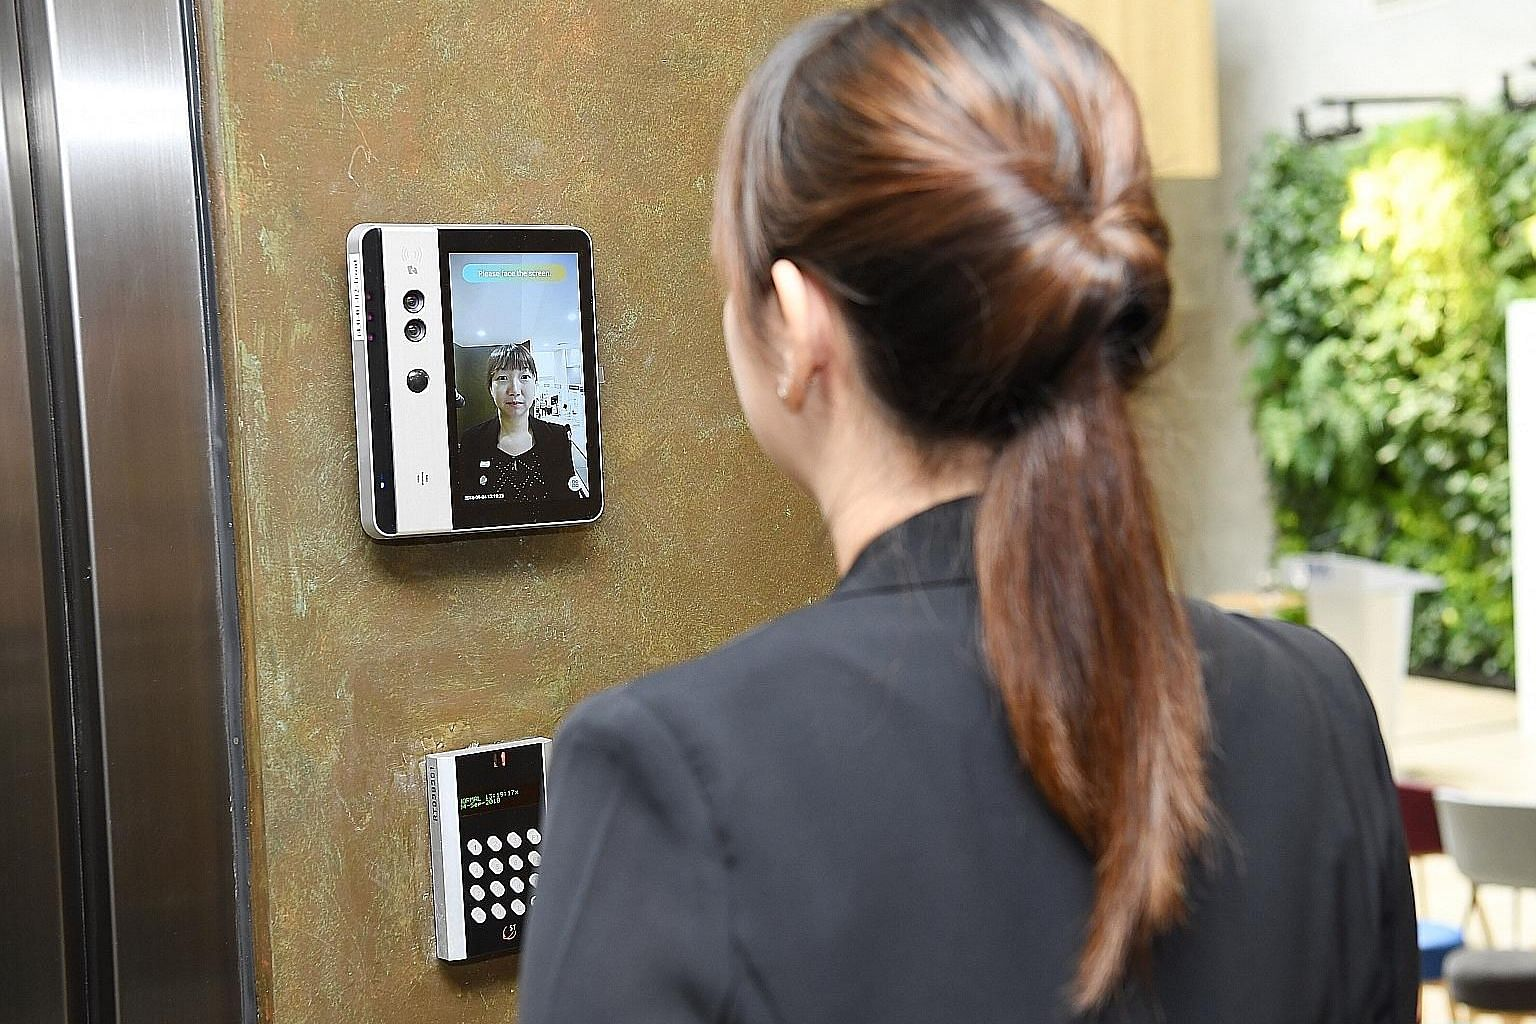 Right: The facial recognition door lock is used for entry to the offices and labs at innovation4.0. Far right: At the smart cafe, robot baristas use facial recognition technology to serve regular customers coffee suited to their tastes.